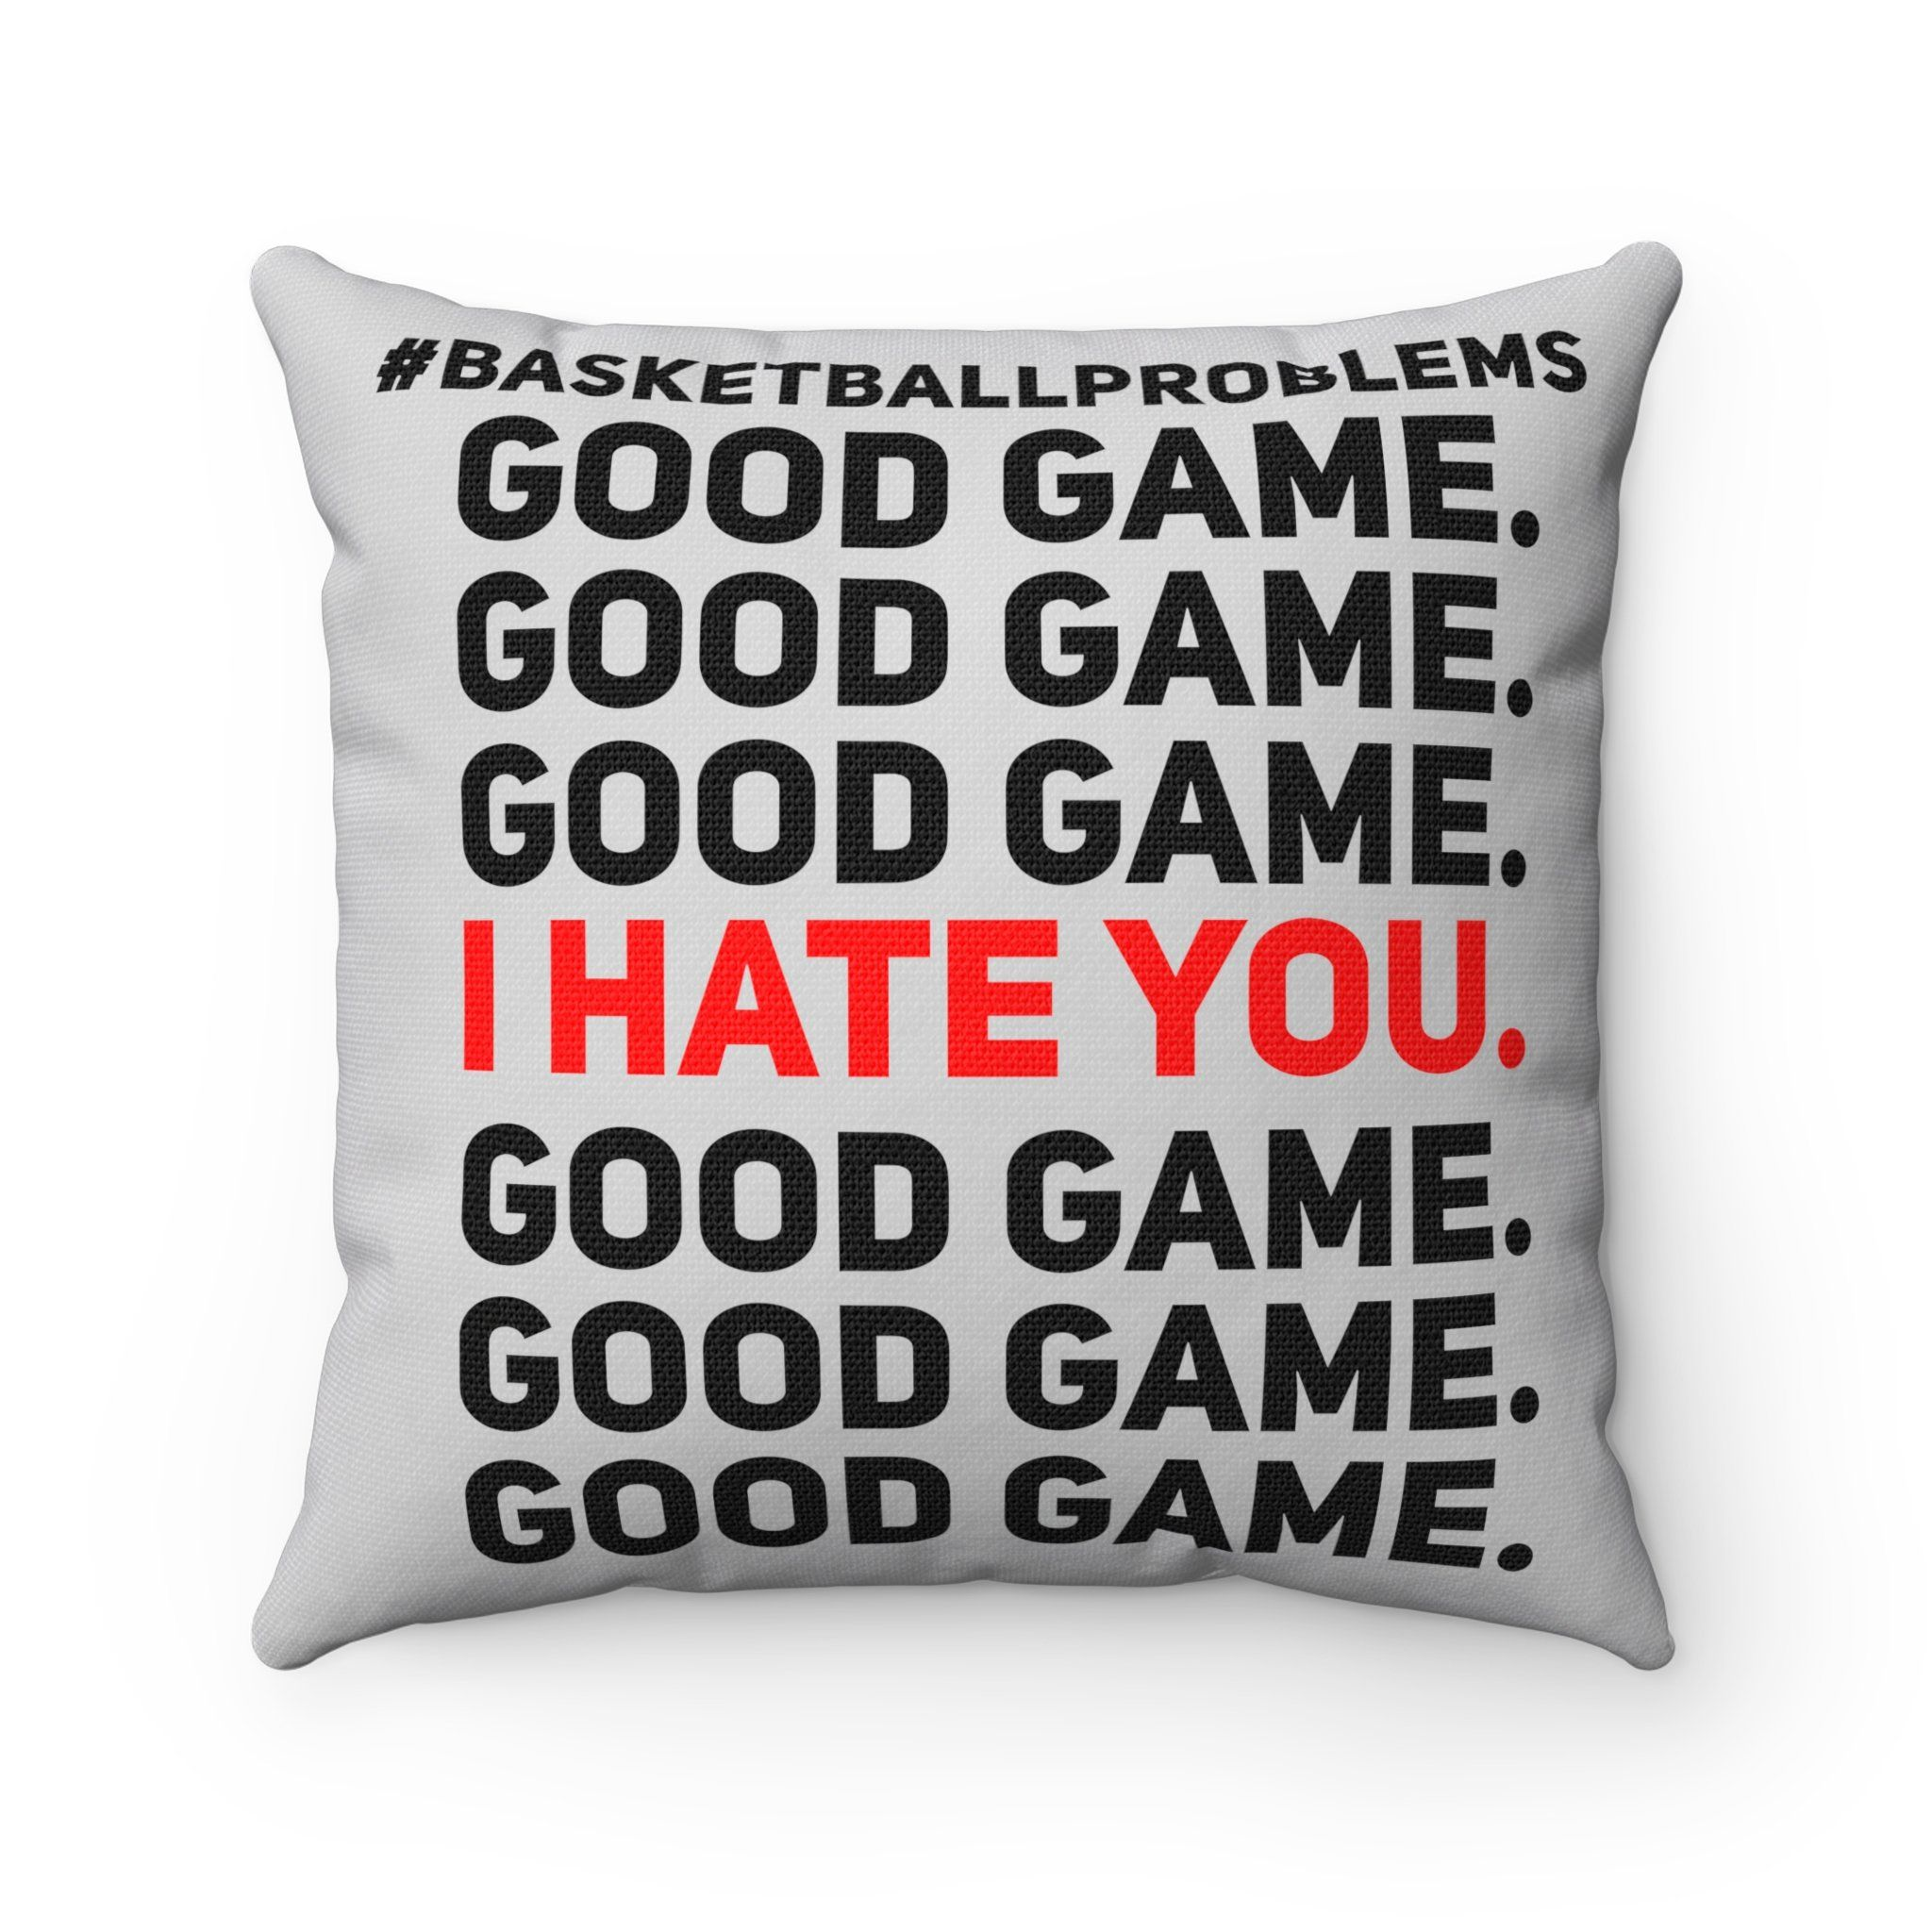 Basketball square pillow pillows and products